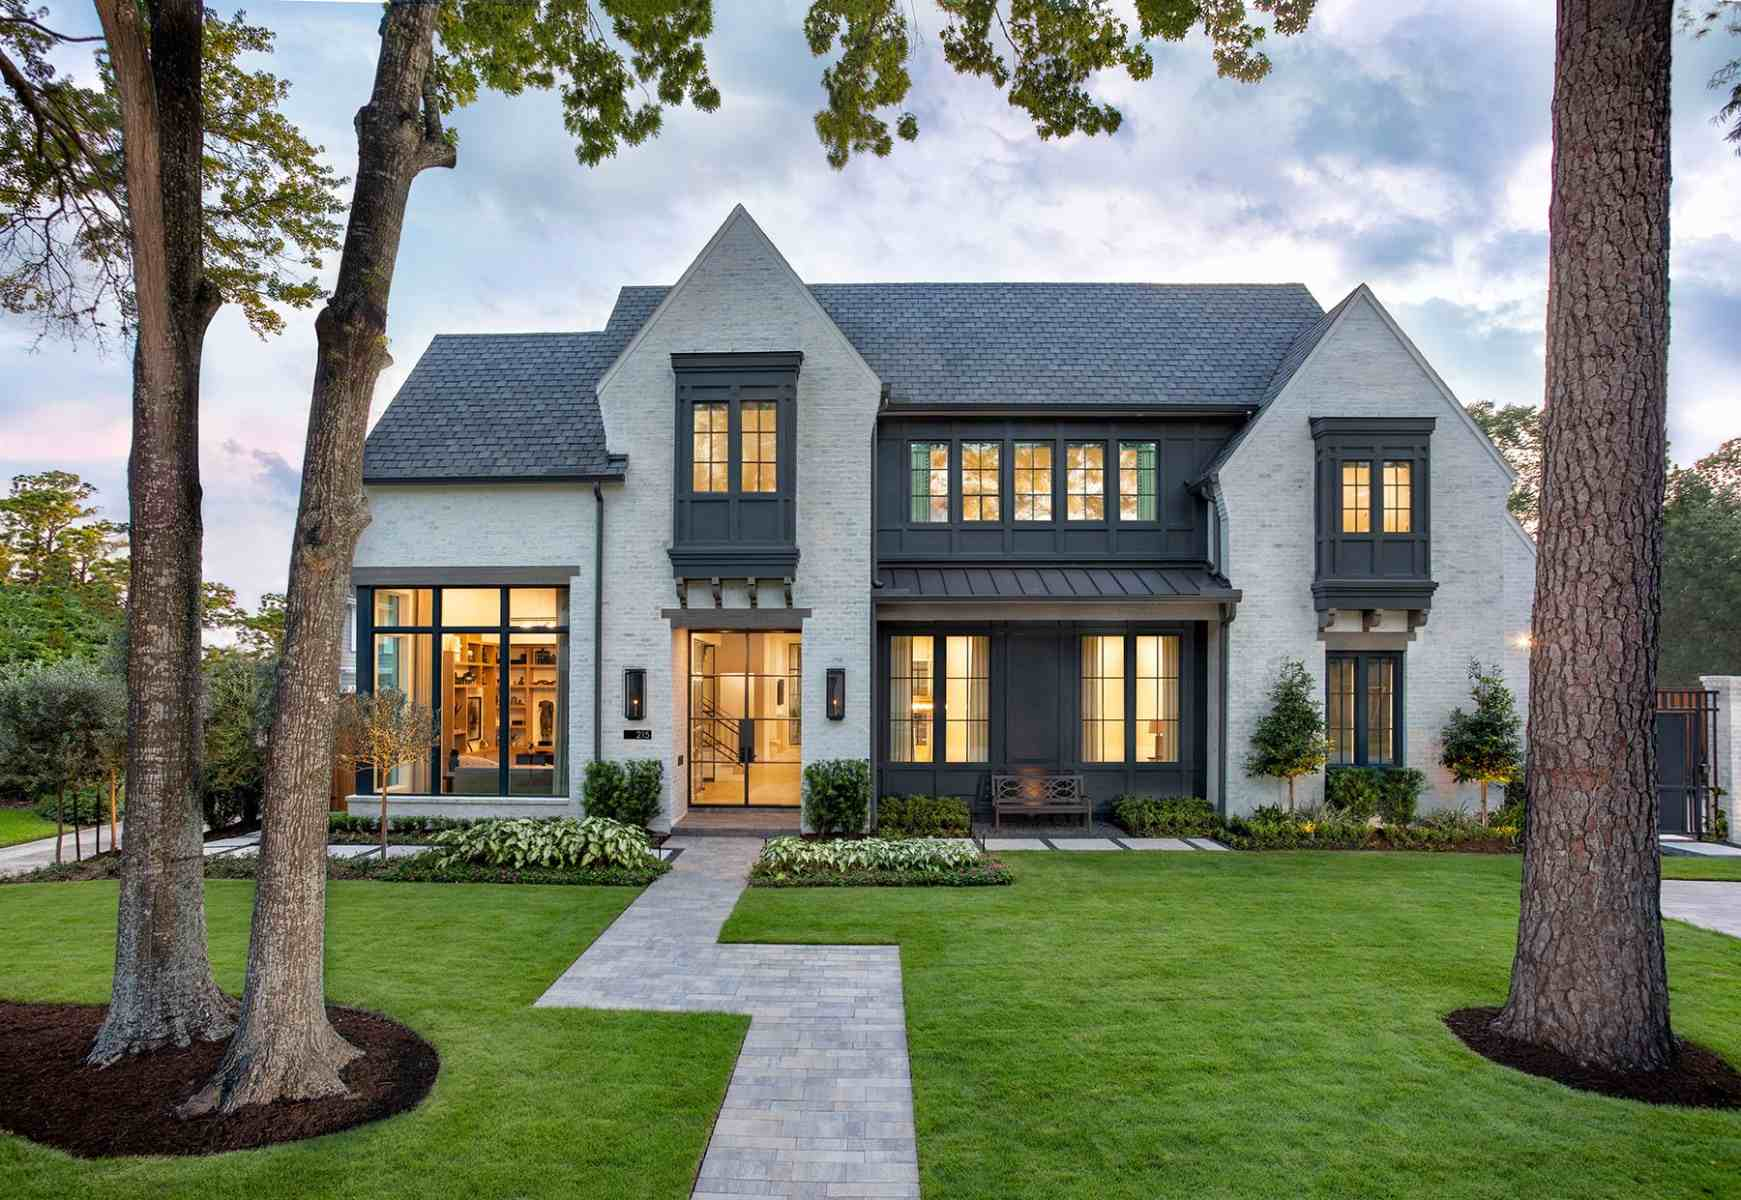 A custom home built in Hunters Creek, Houston by Frankel Building Group